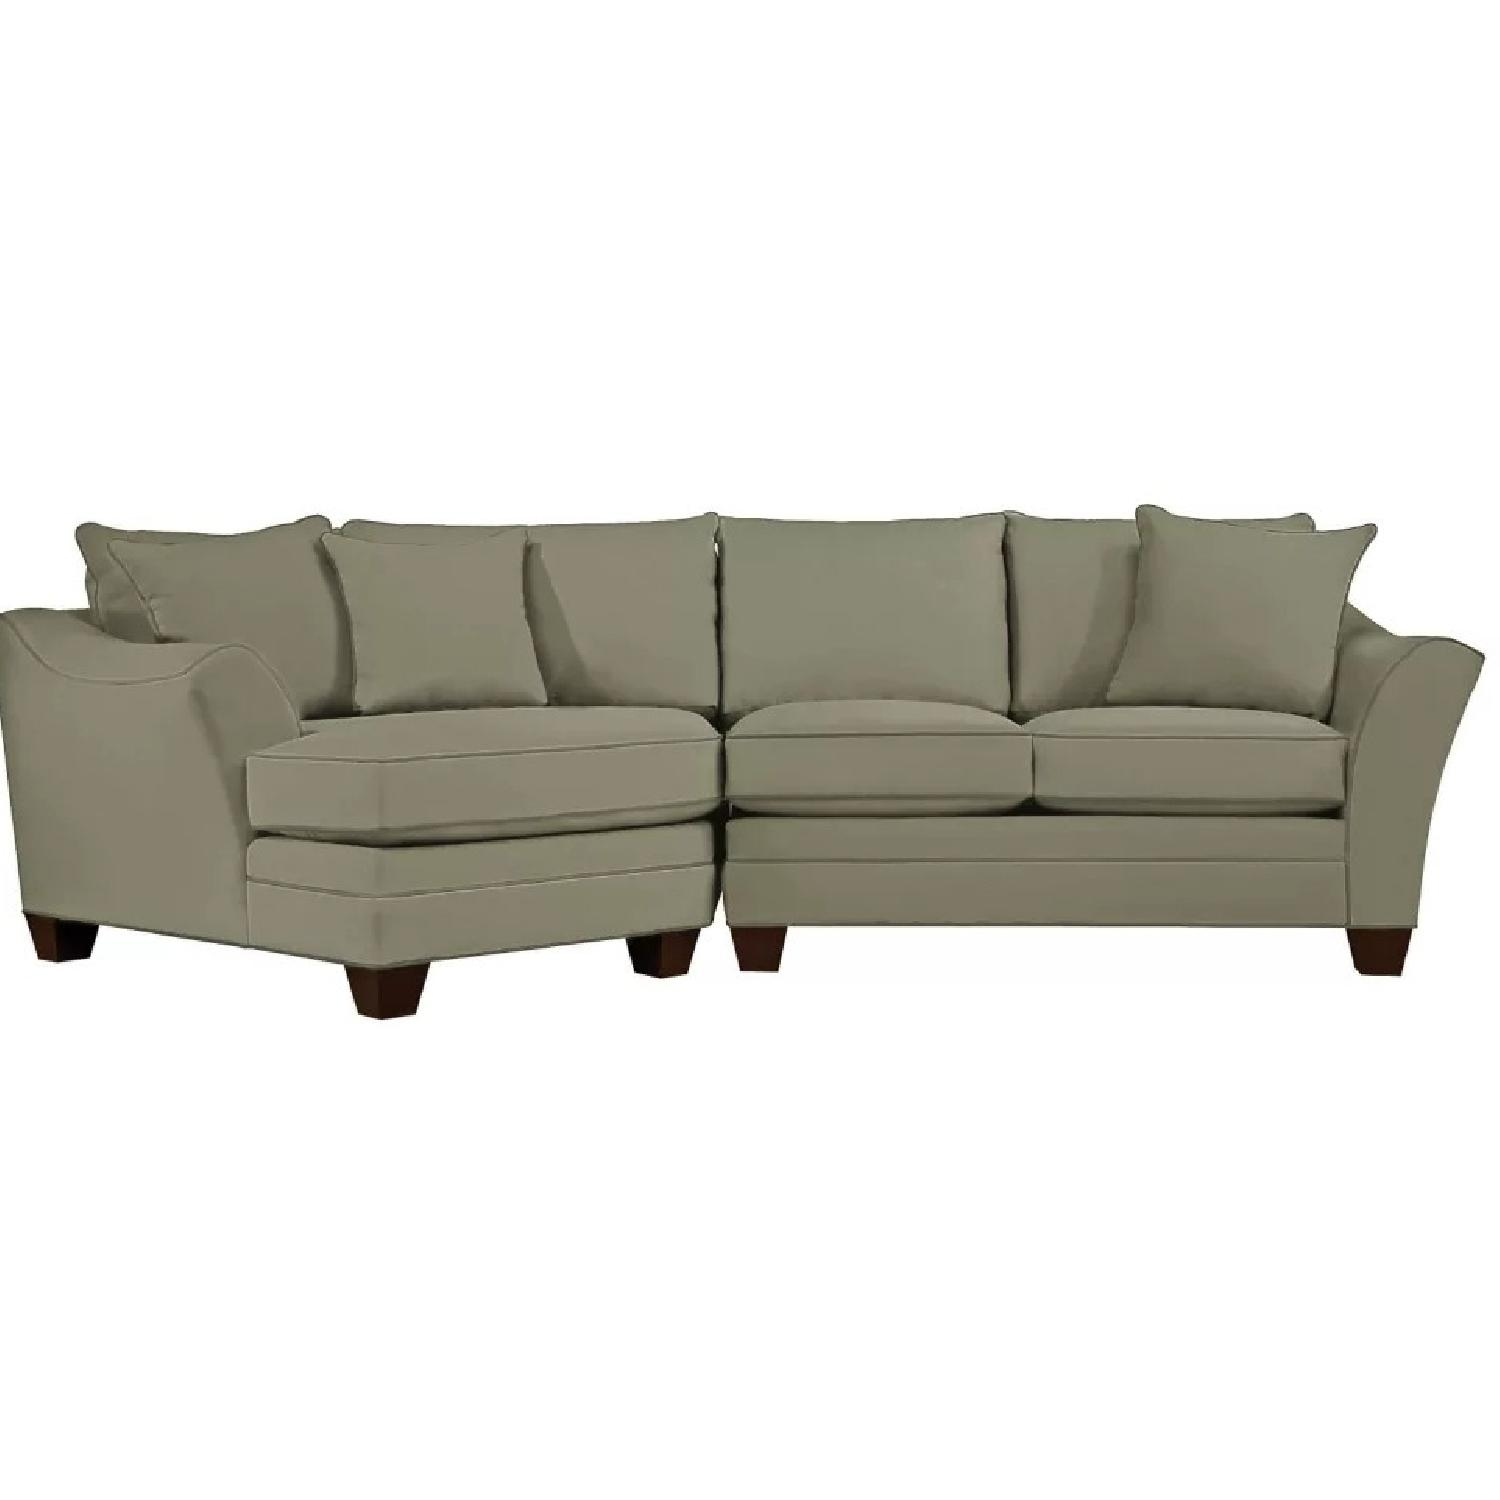 Raymour & Flanigan 2 Piece Sectional w/Cuddler - image-7